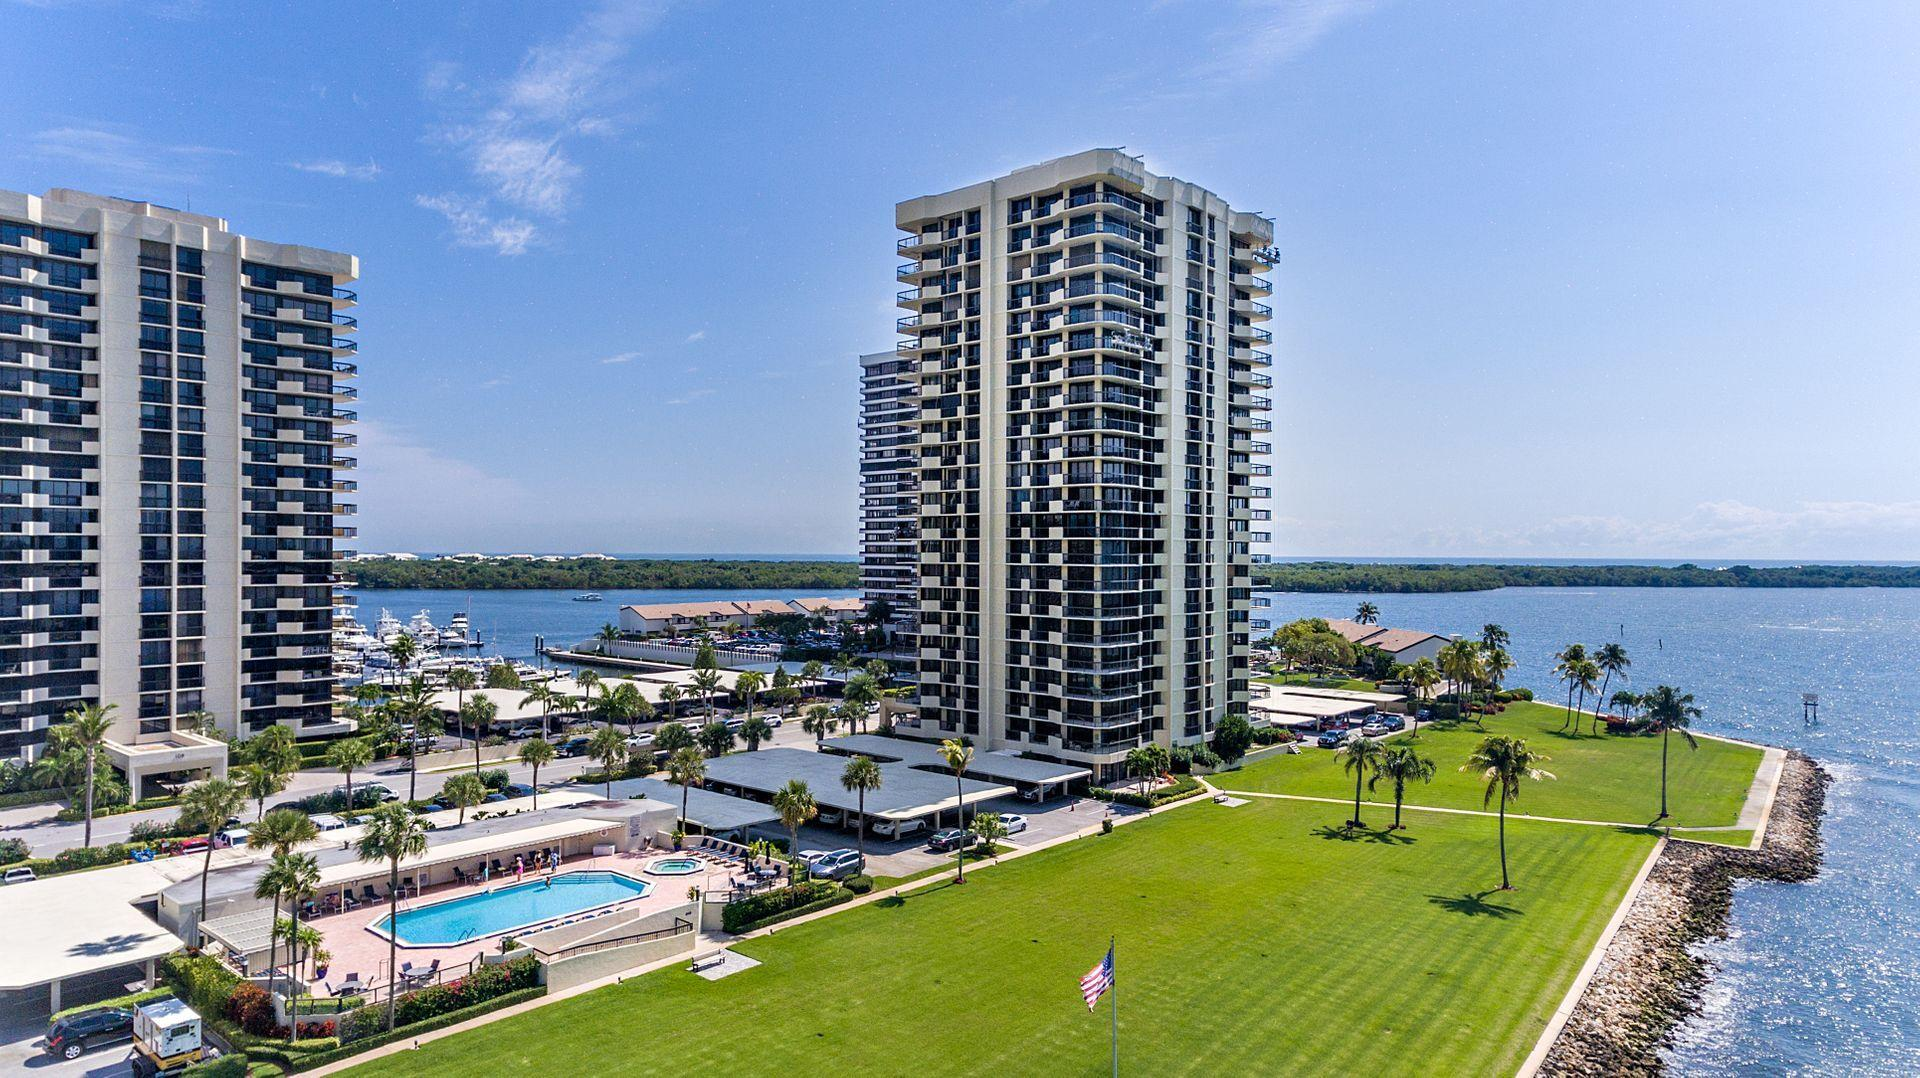 Photo of 115 Lakeshore Drive #747, North Palm Beach, FL 33408